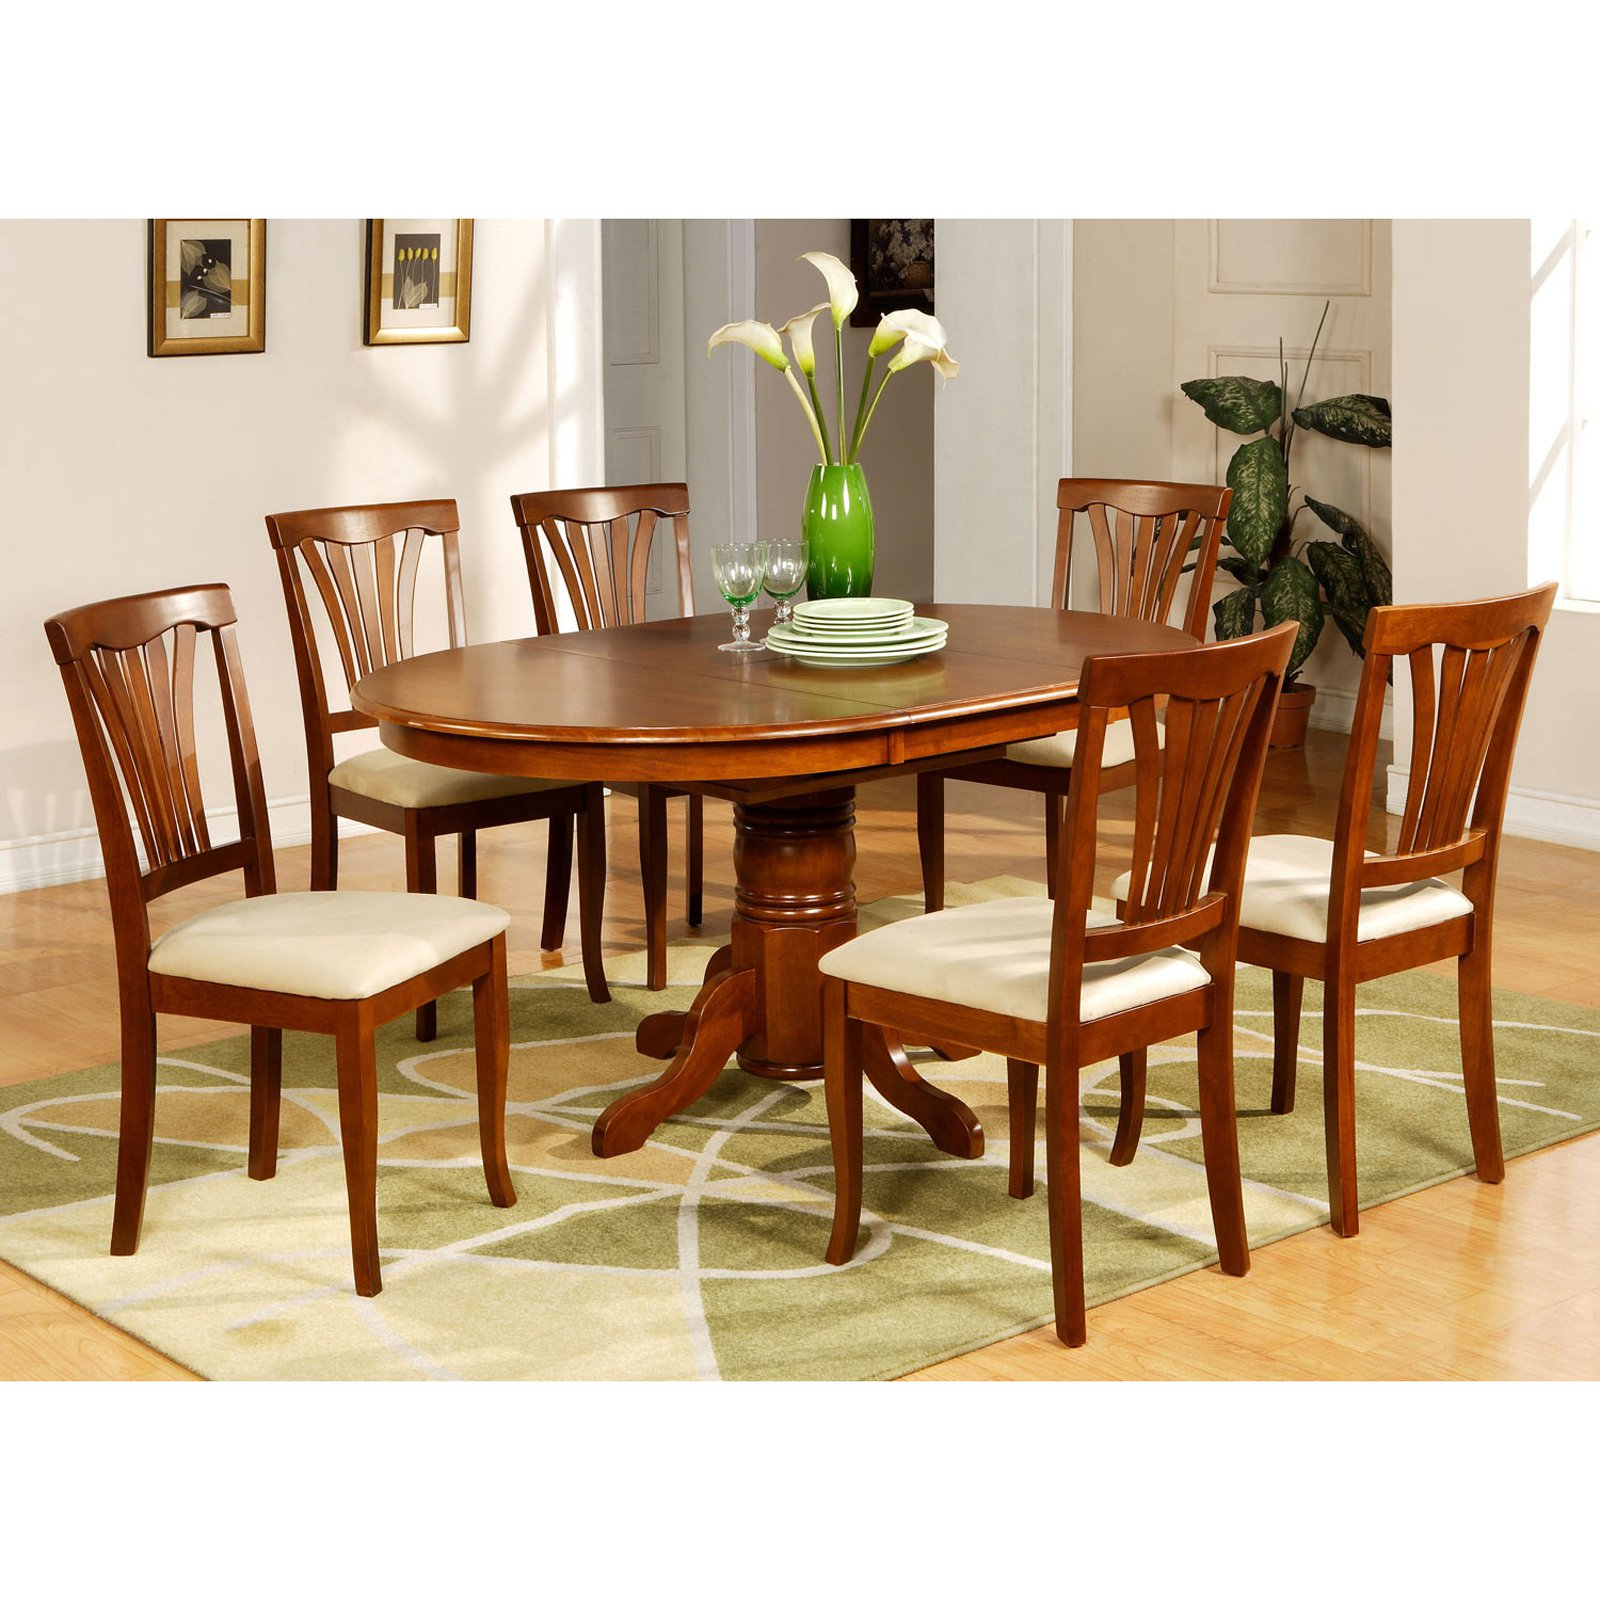 Charmant East West Furniture Avon 5 Piece Pedestal Oval Dining Table Set With  Microfiber Seat Chairs   Walmart.com